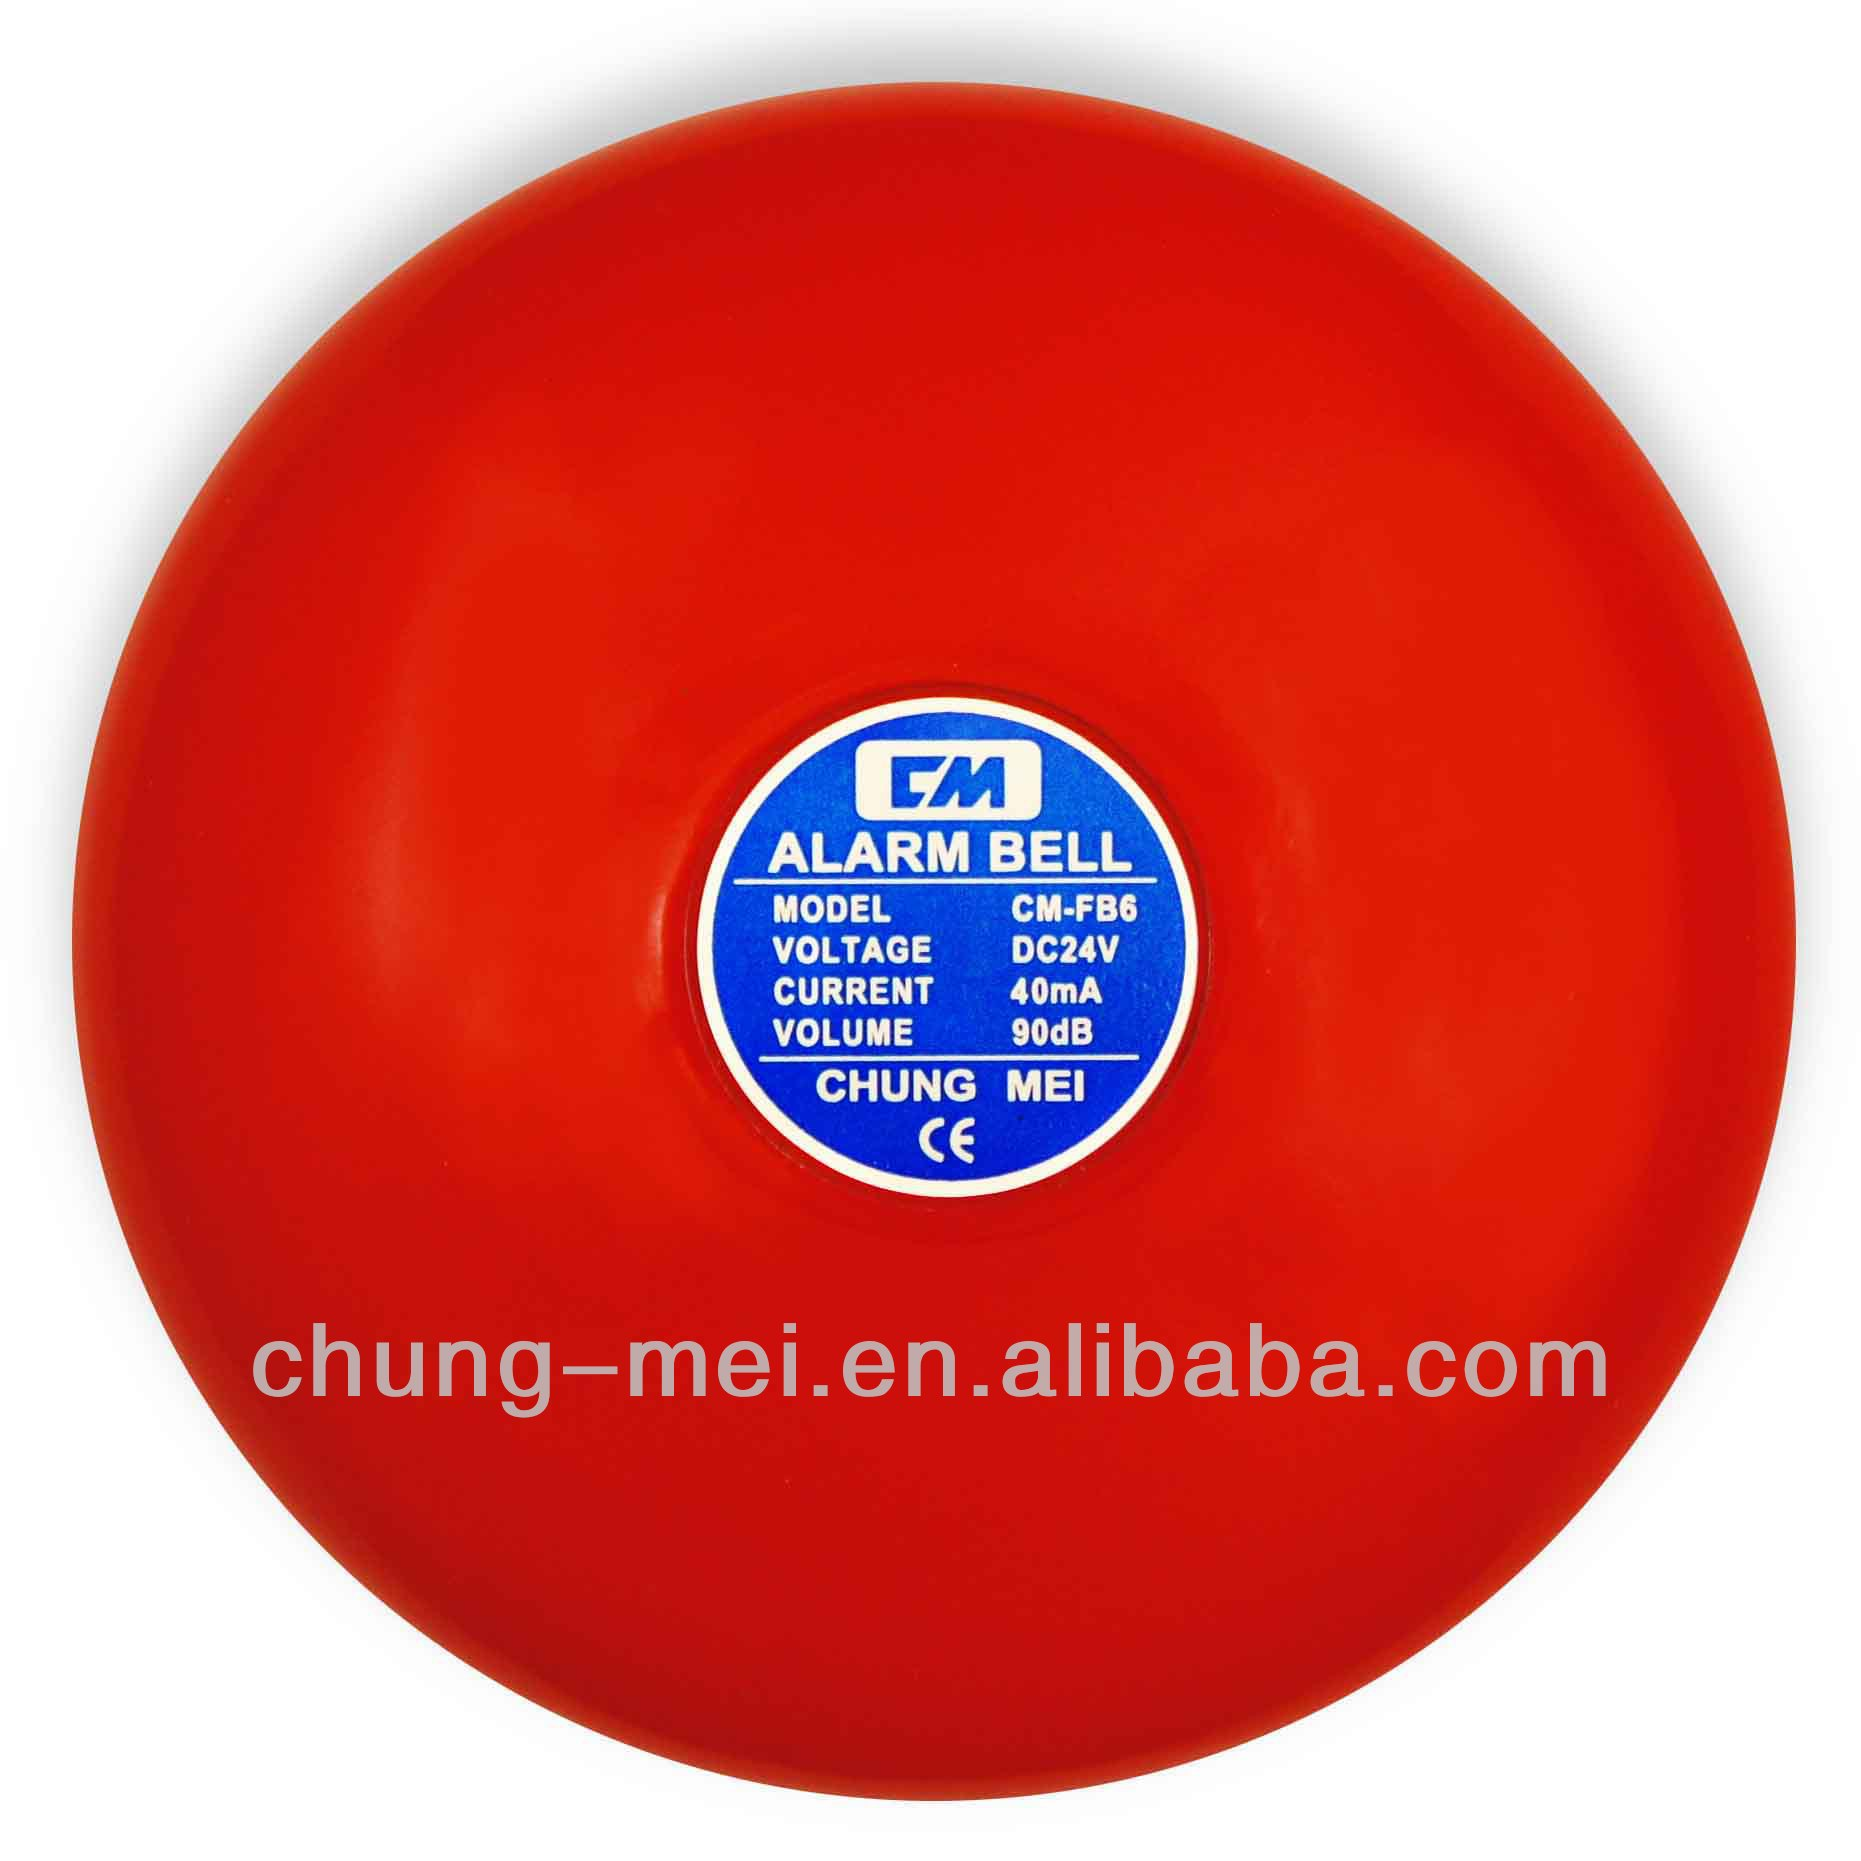 CE RoHS 6 Inch Fire Alarm Bell in 24V DC